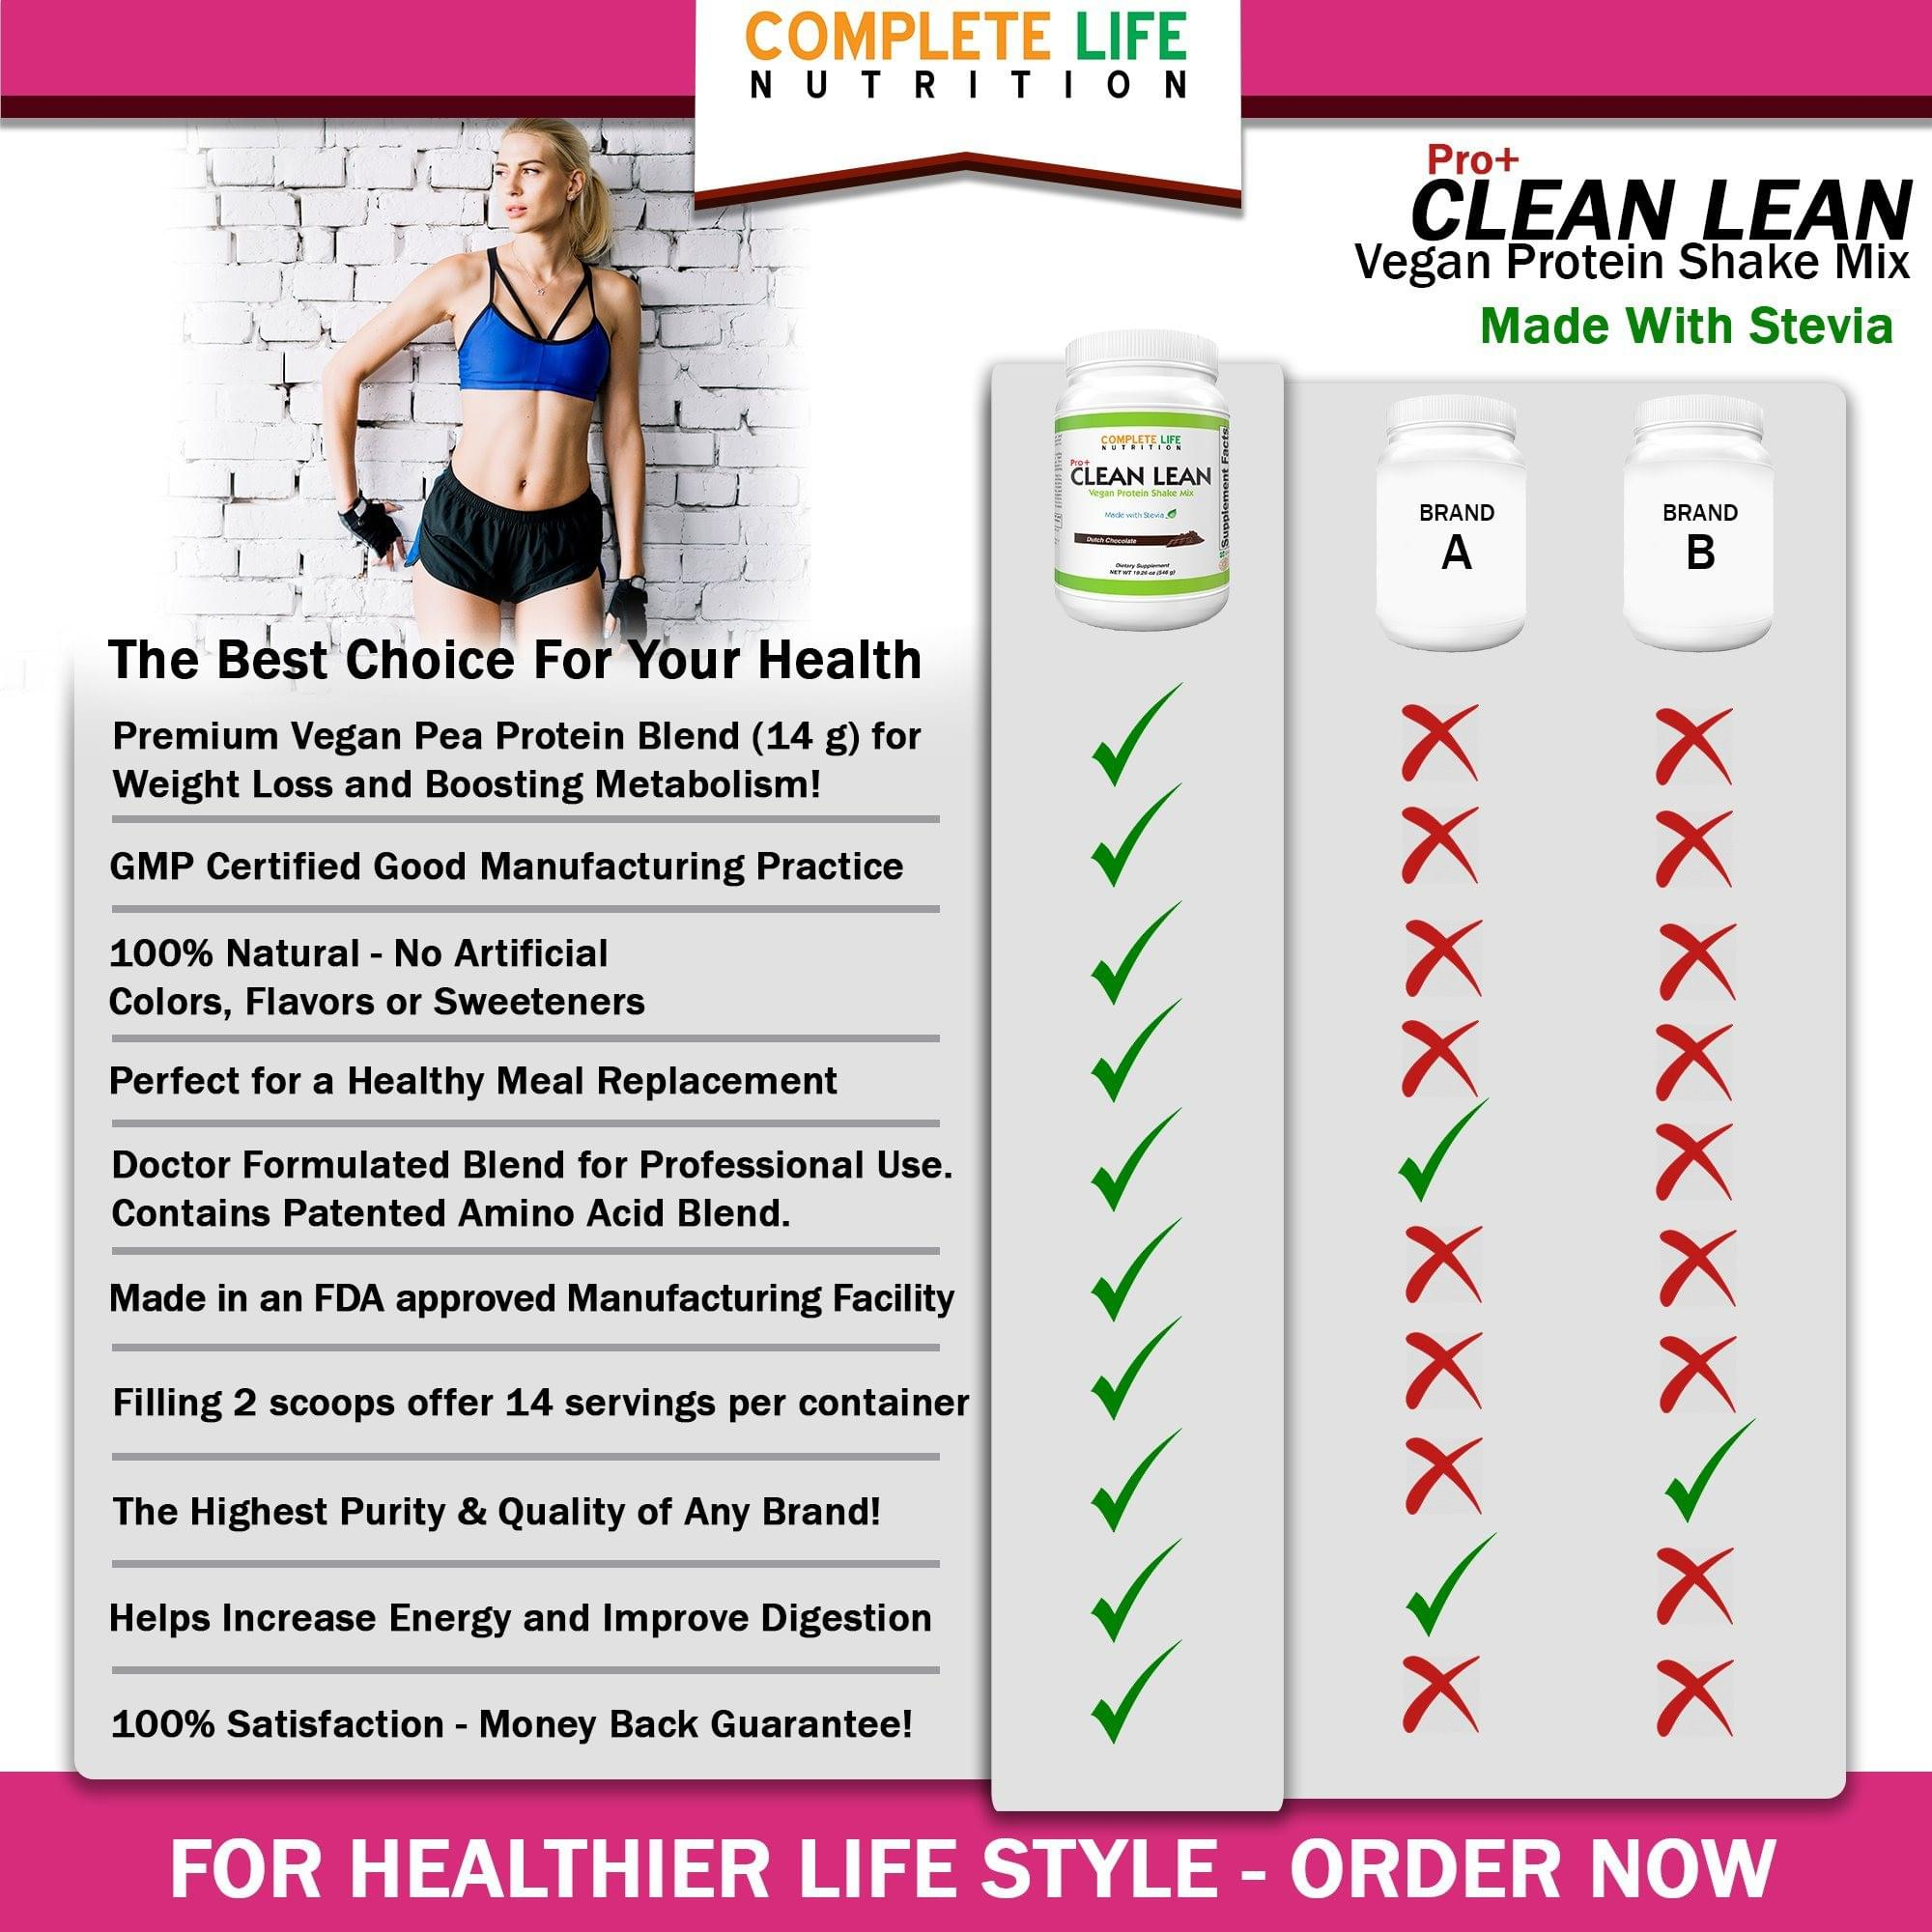 Clean Lean Shake - Creamy French Vanilla - Paleo Meal Protein Powder - Complete Life Nutrition - High Quality Doctor Formulated Vitamins and Supplements